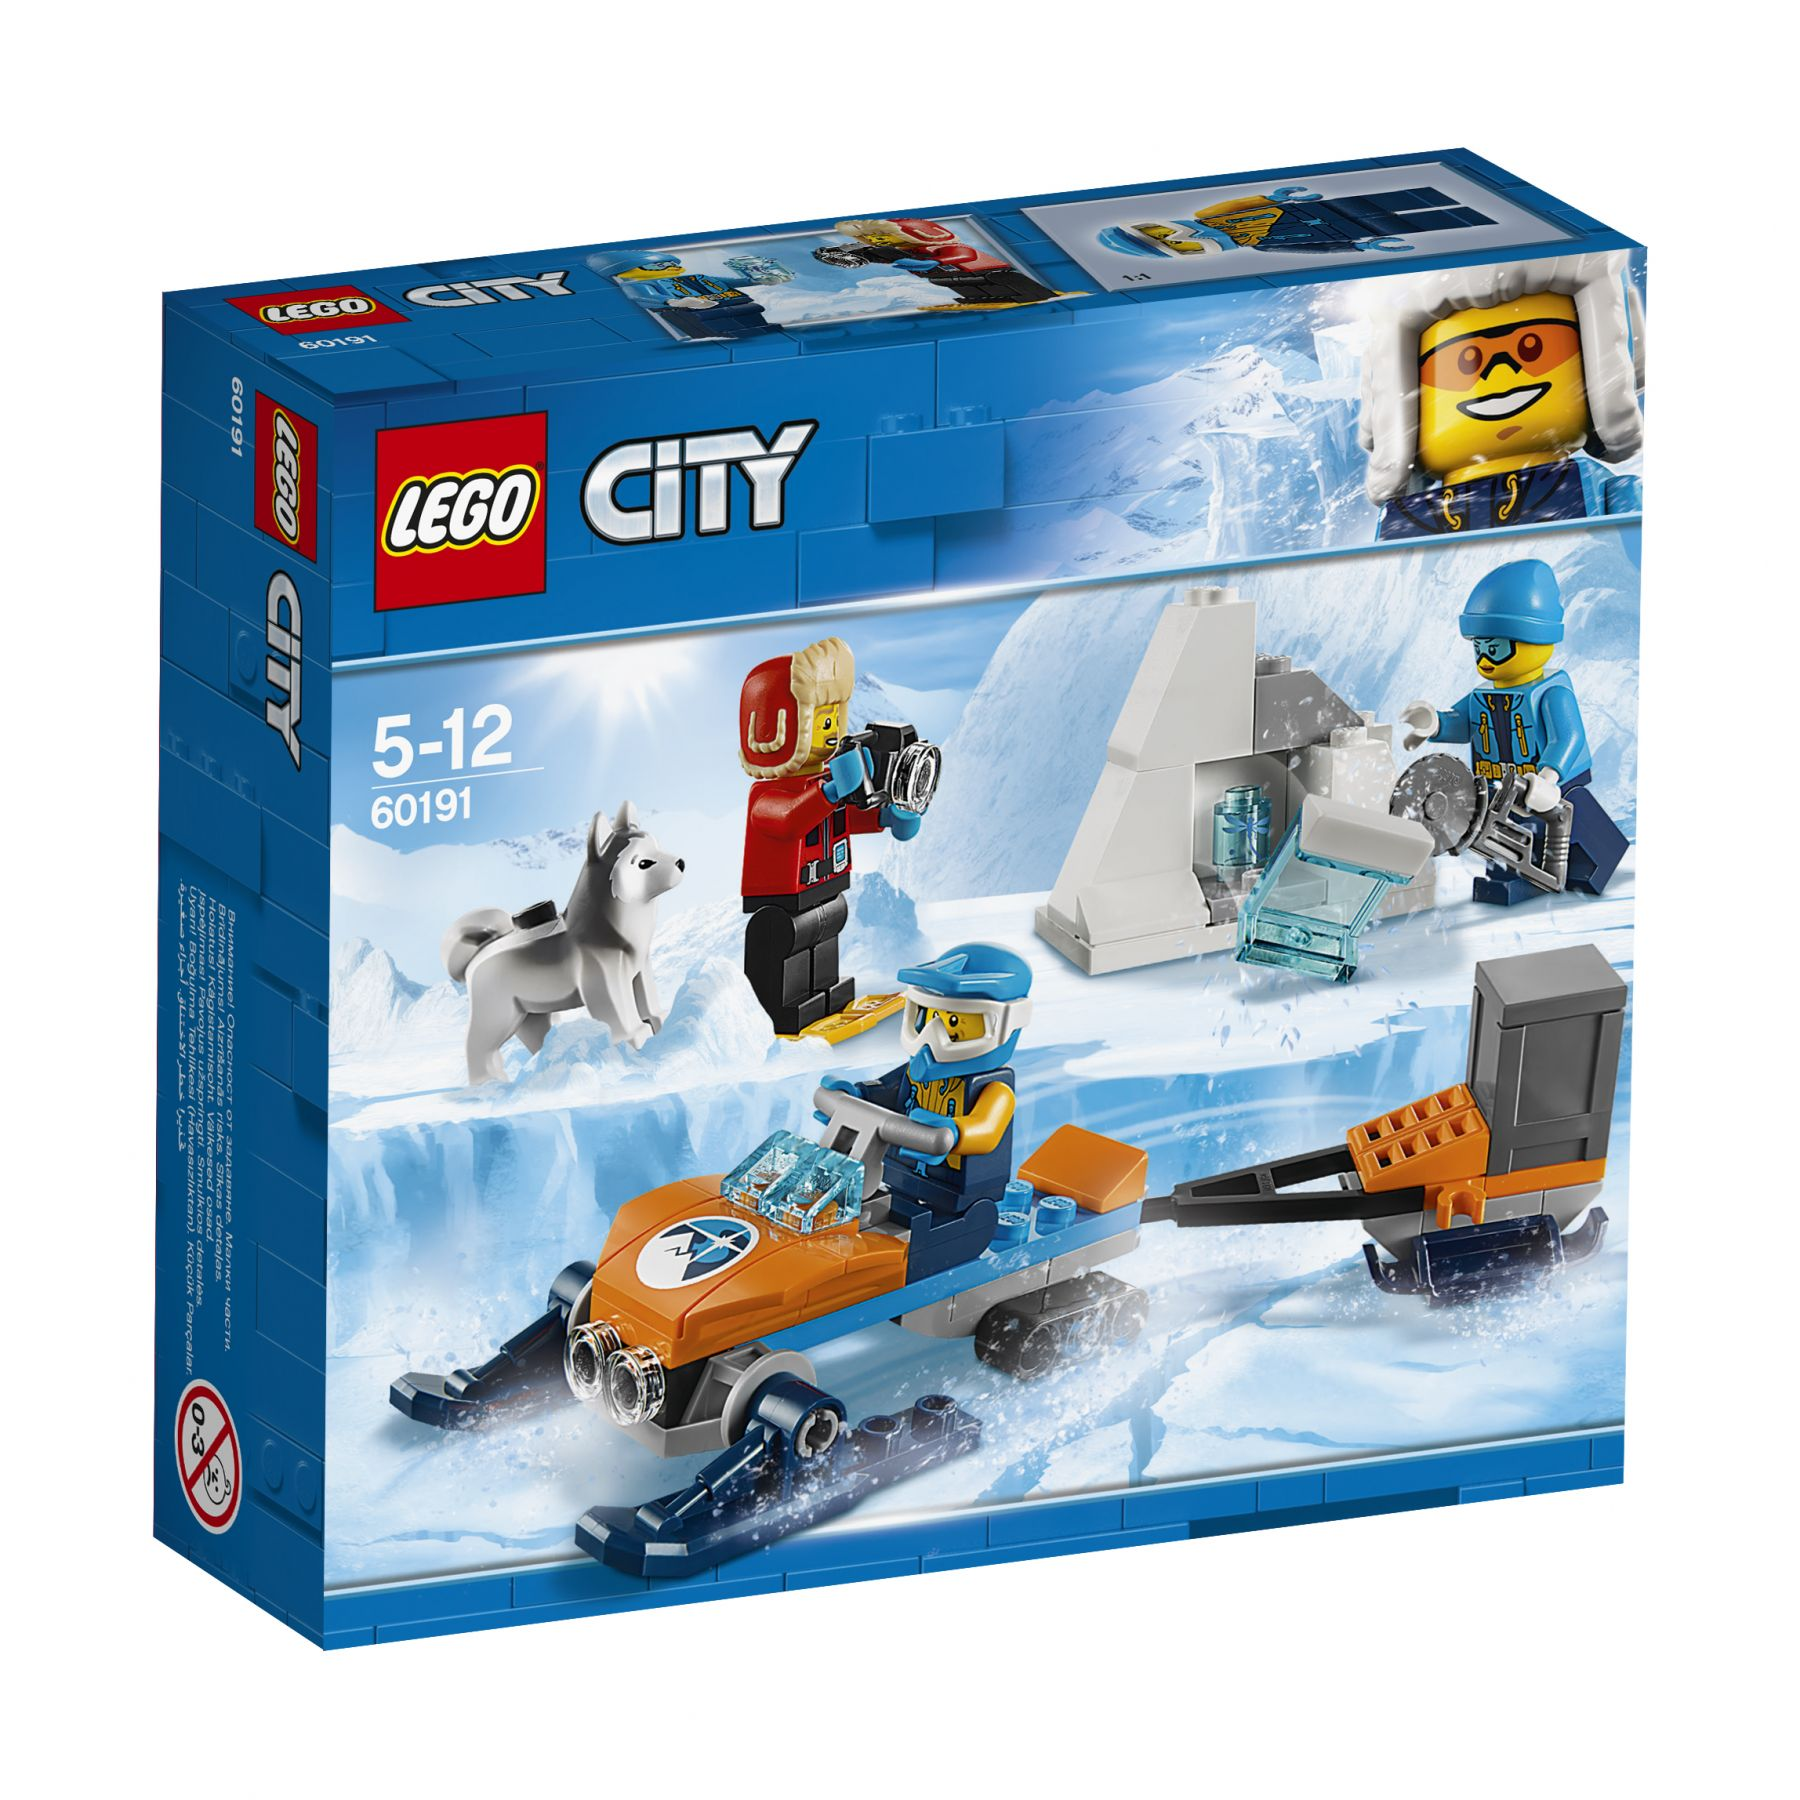 LEGO City 60191 Arktis-Expeditionsteam 60191_LEGO_Cit_Arktis_Expeditionsteam_Packung.jpg